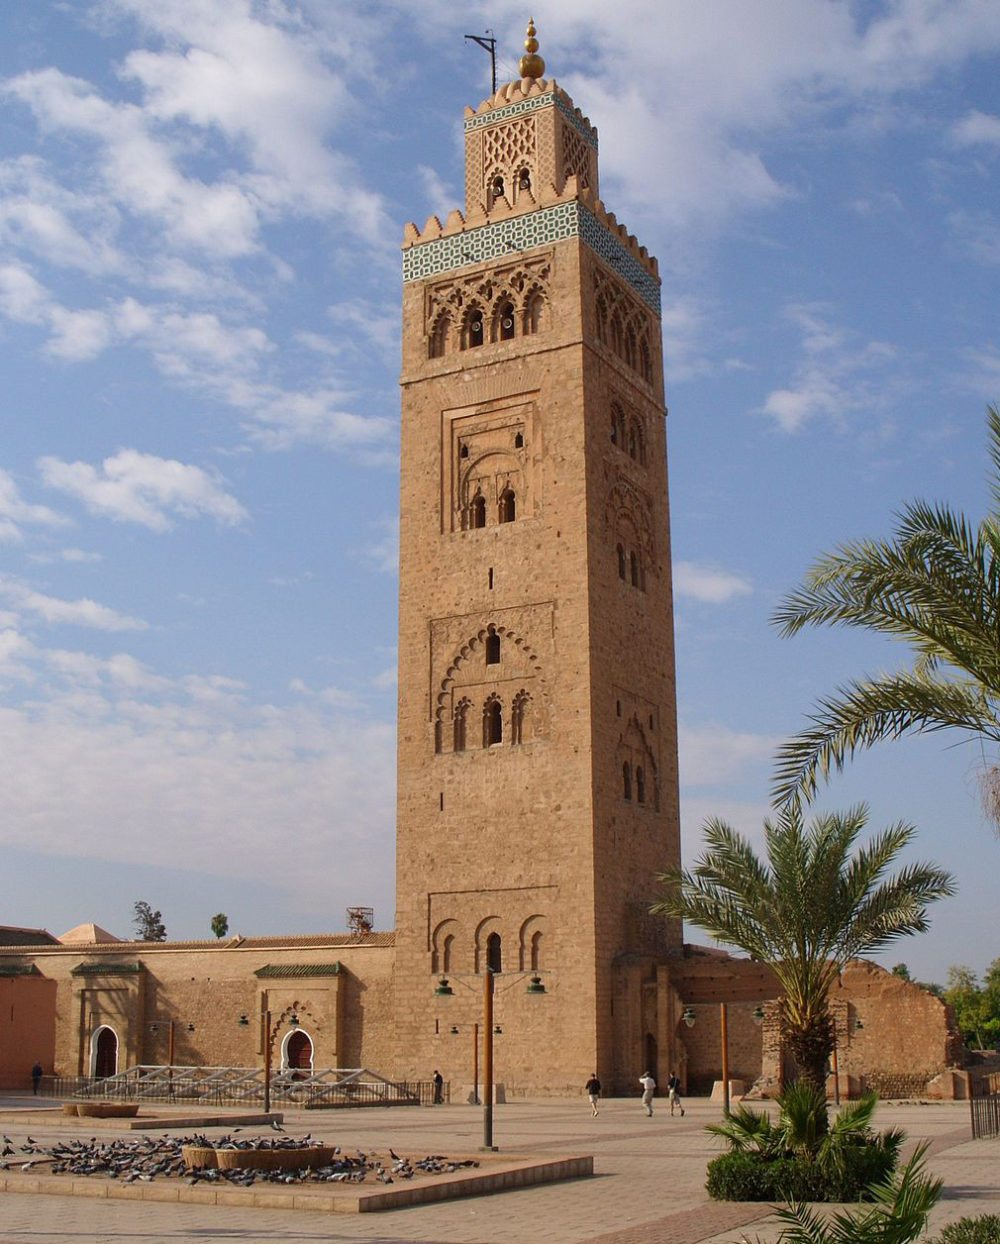 "Koutoubia-Moschee, Marrakesch. (Urheber: Rol1000 / <a href=""http://www.flickr.com/photos/rol1000/5143297057/in/set-72157625299930054"" target=""_blank"">flickr.com</a> / Lizenz: <a href=""http://creativecommons.org/licenses/by-sa/3.0/deed.de"" target=""_blank"">CC</a>)"